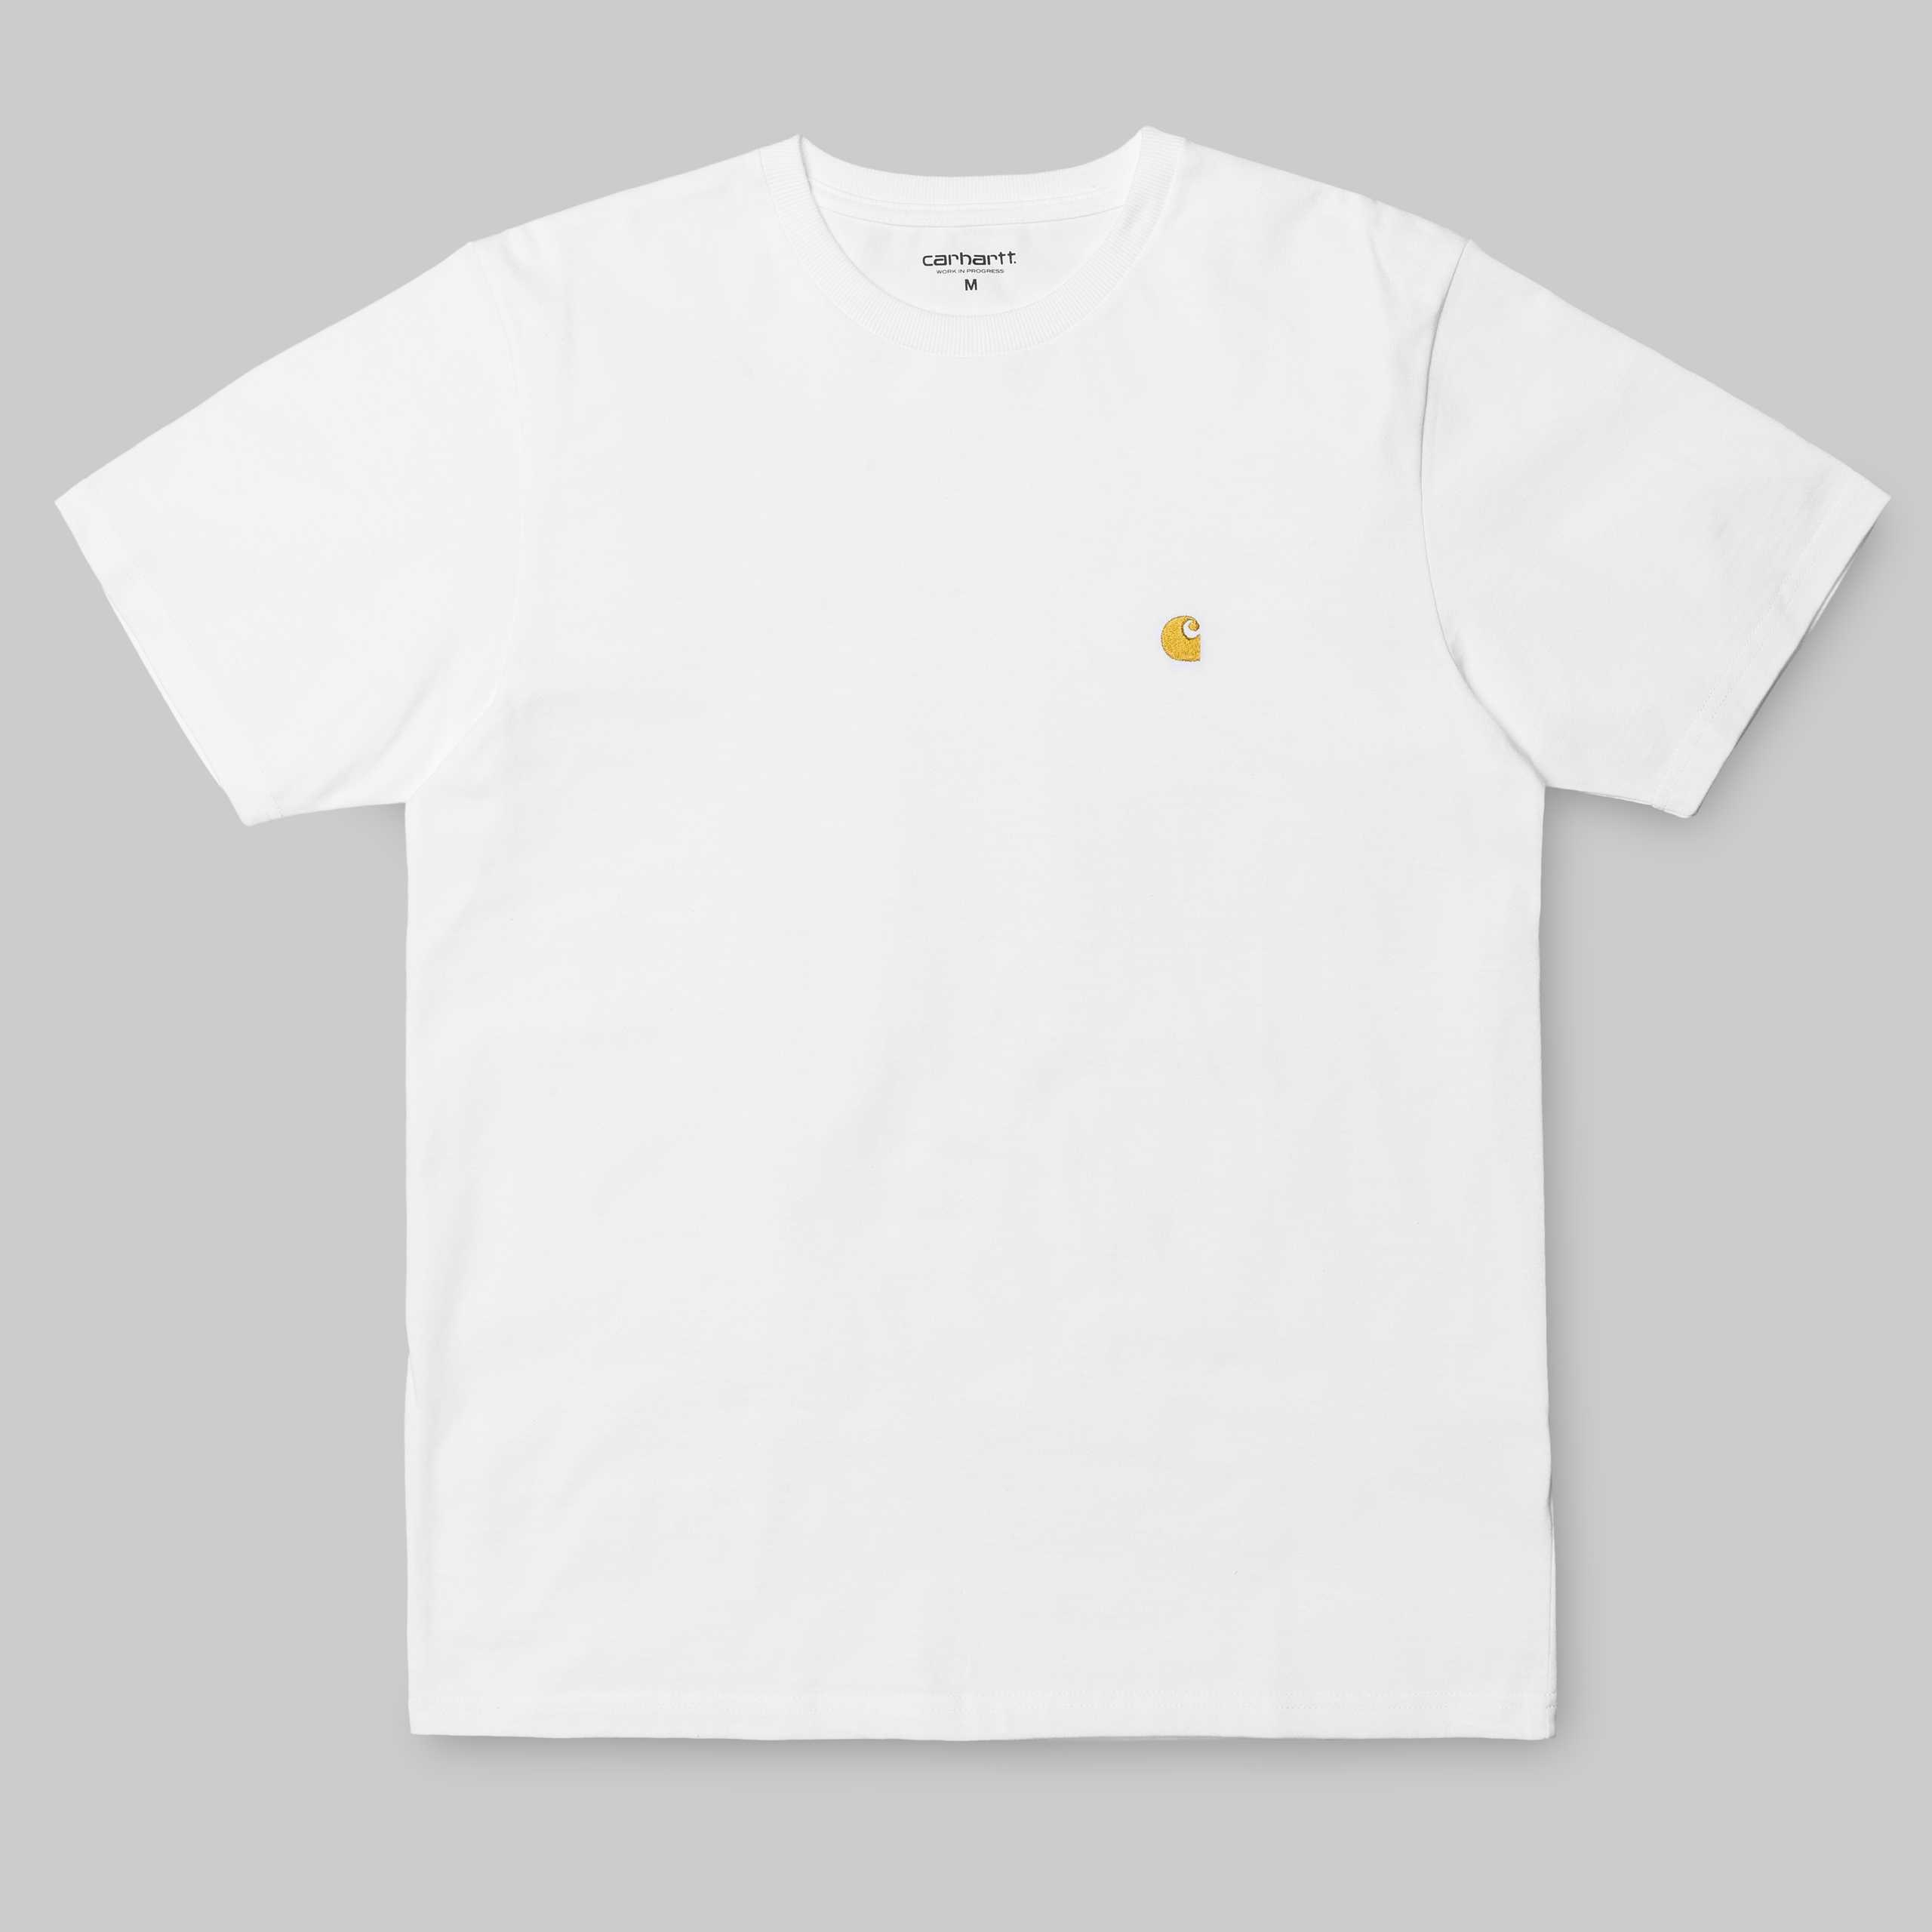 Carhartt S/S Chase t-shirt, white/gold, x-large